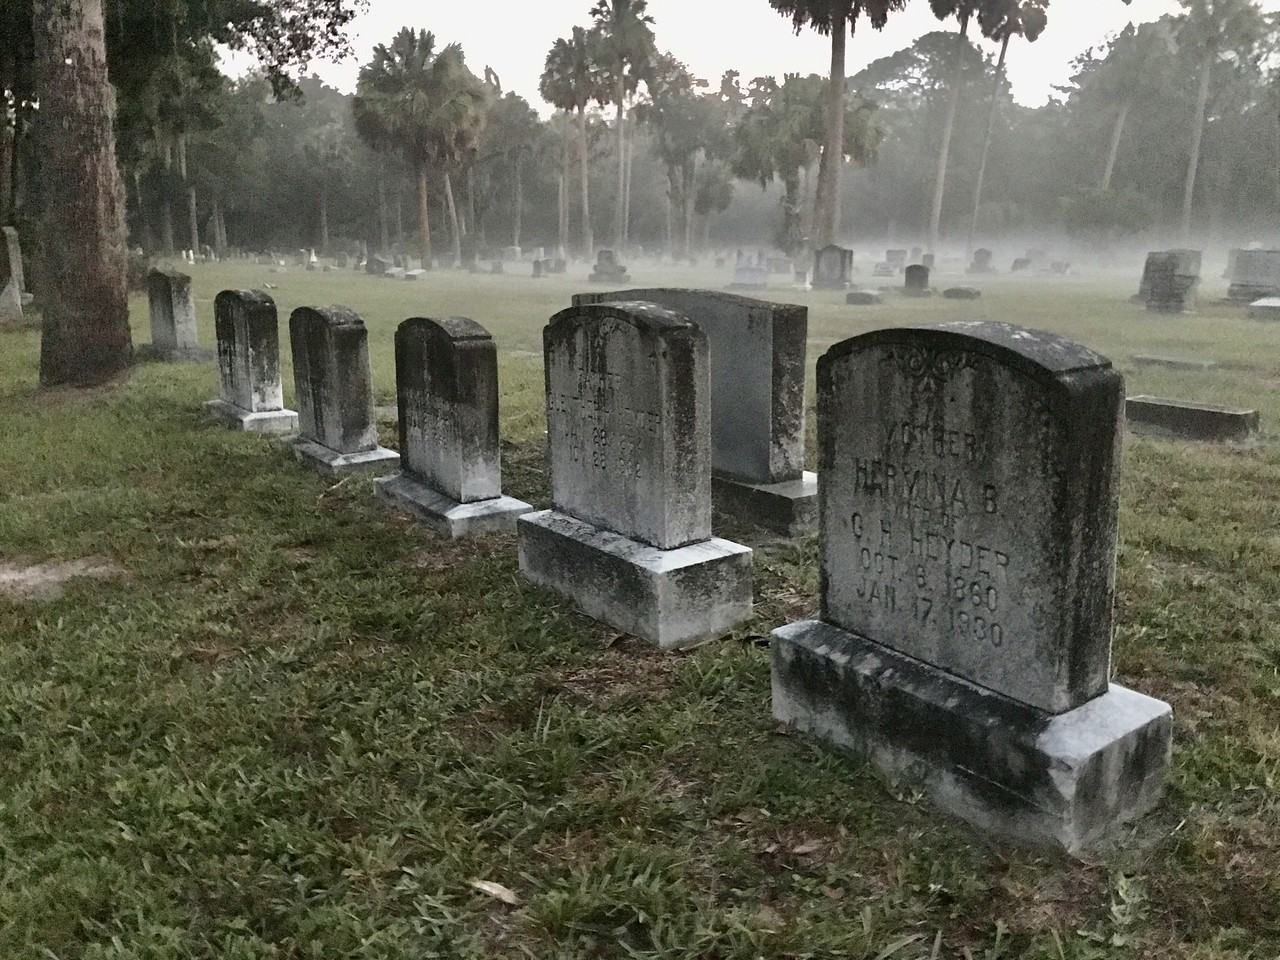 The Jaxson presents: Evergreen Cemetery walking tour